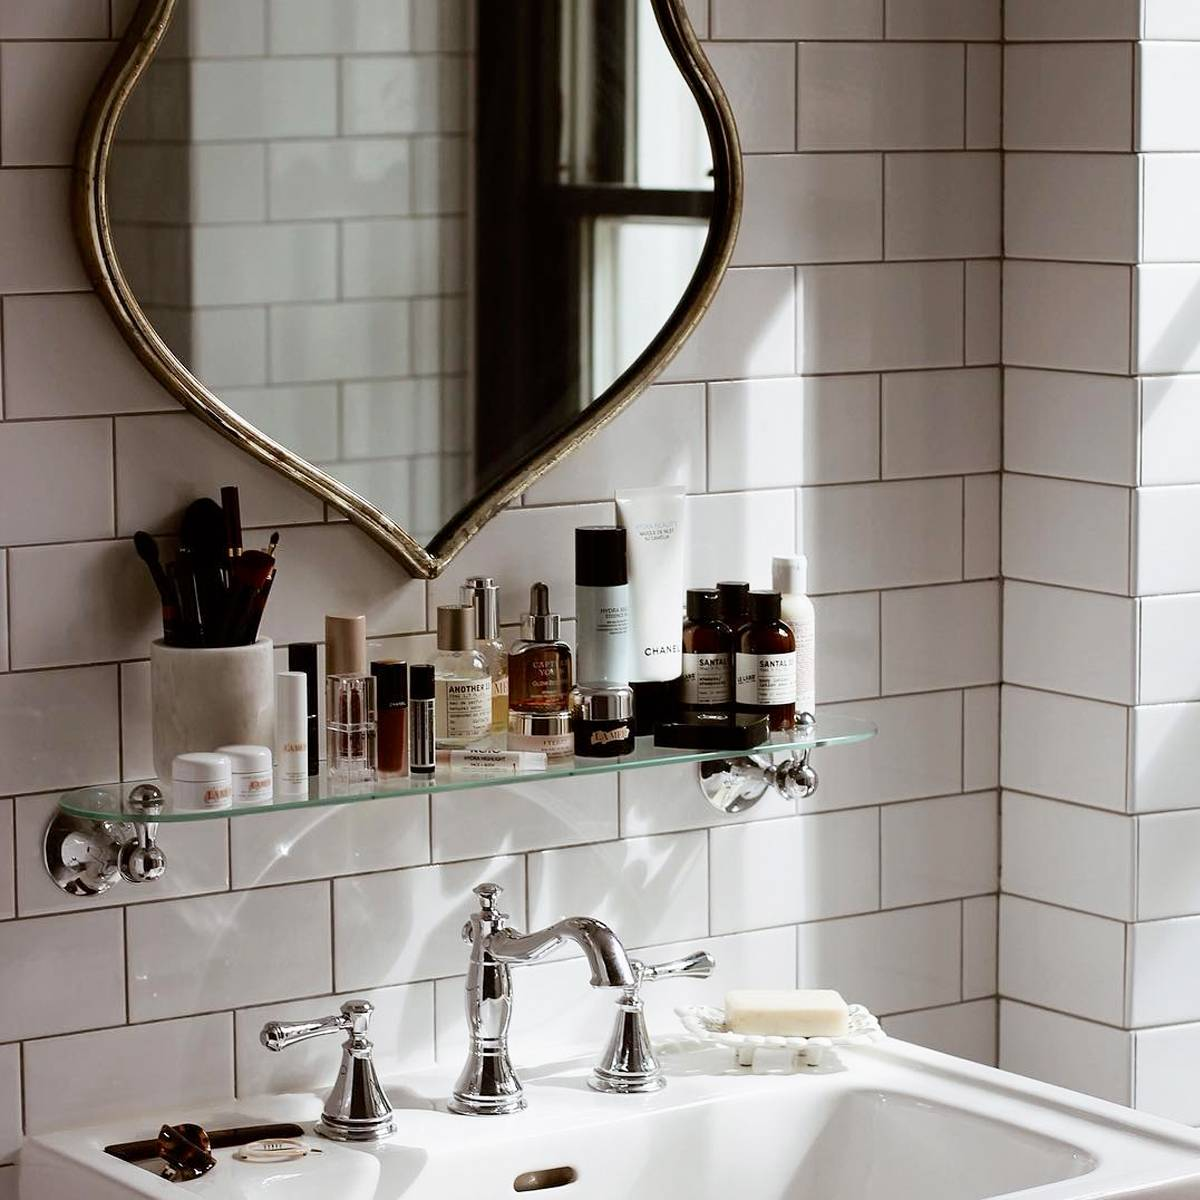 The Morning Beauty Rituals of 9 Successful Women